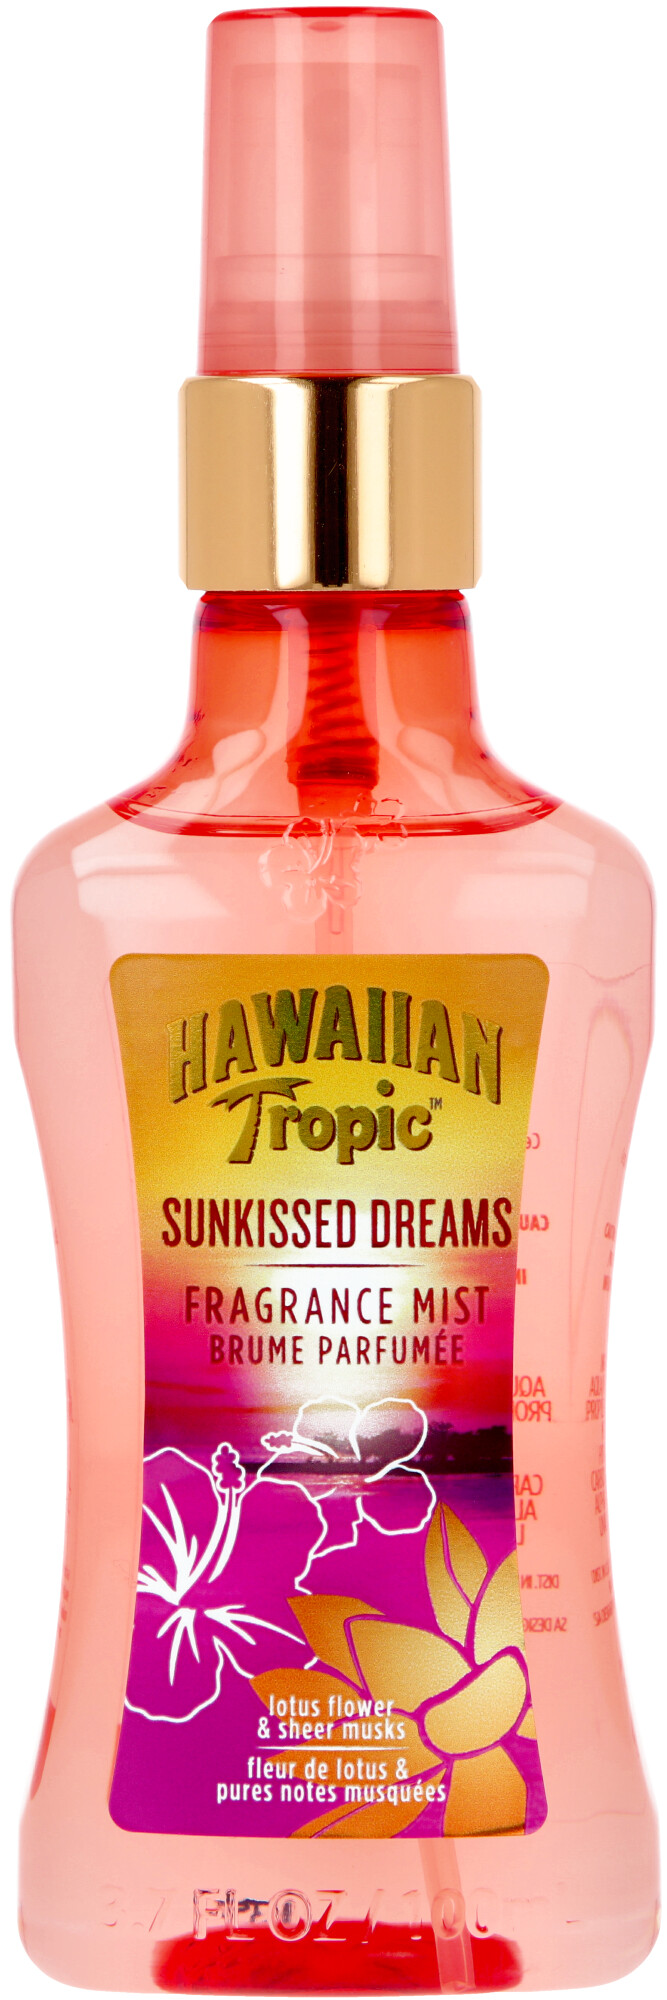 lyko hawaiian tropic